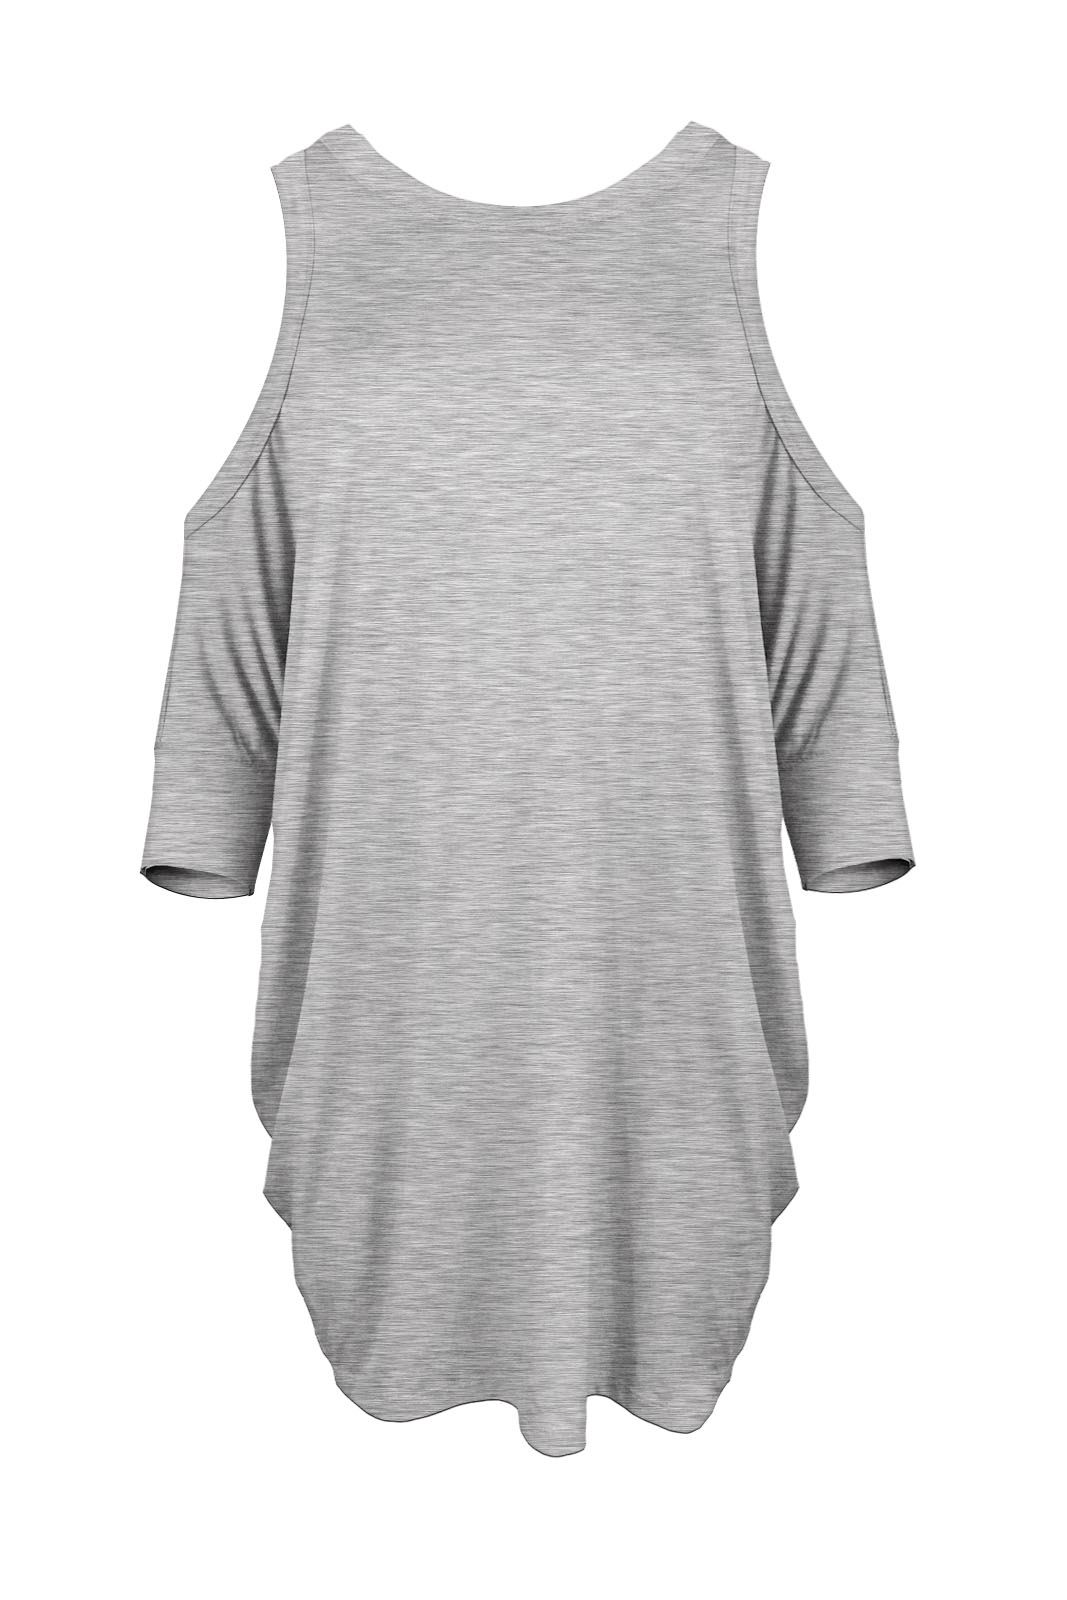 New womens ladies cut out shoulder short sleeve sexy t for Short sleeve t shirts with longer sleeves